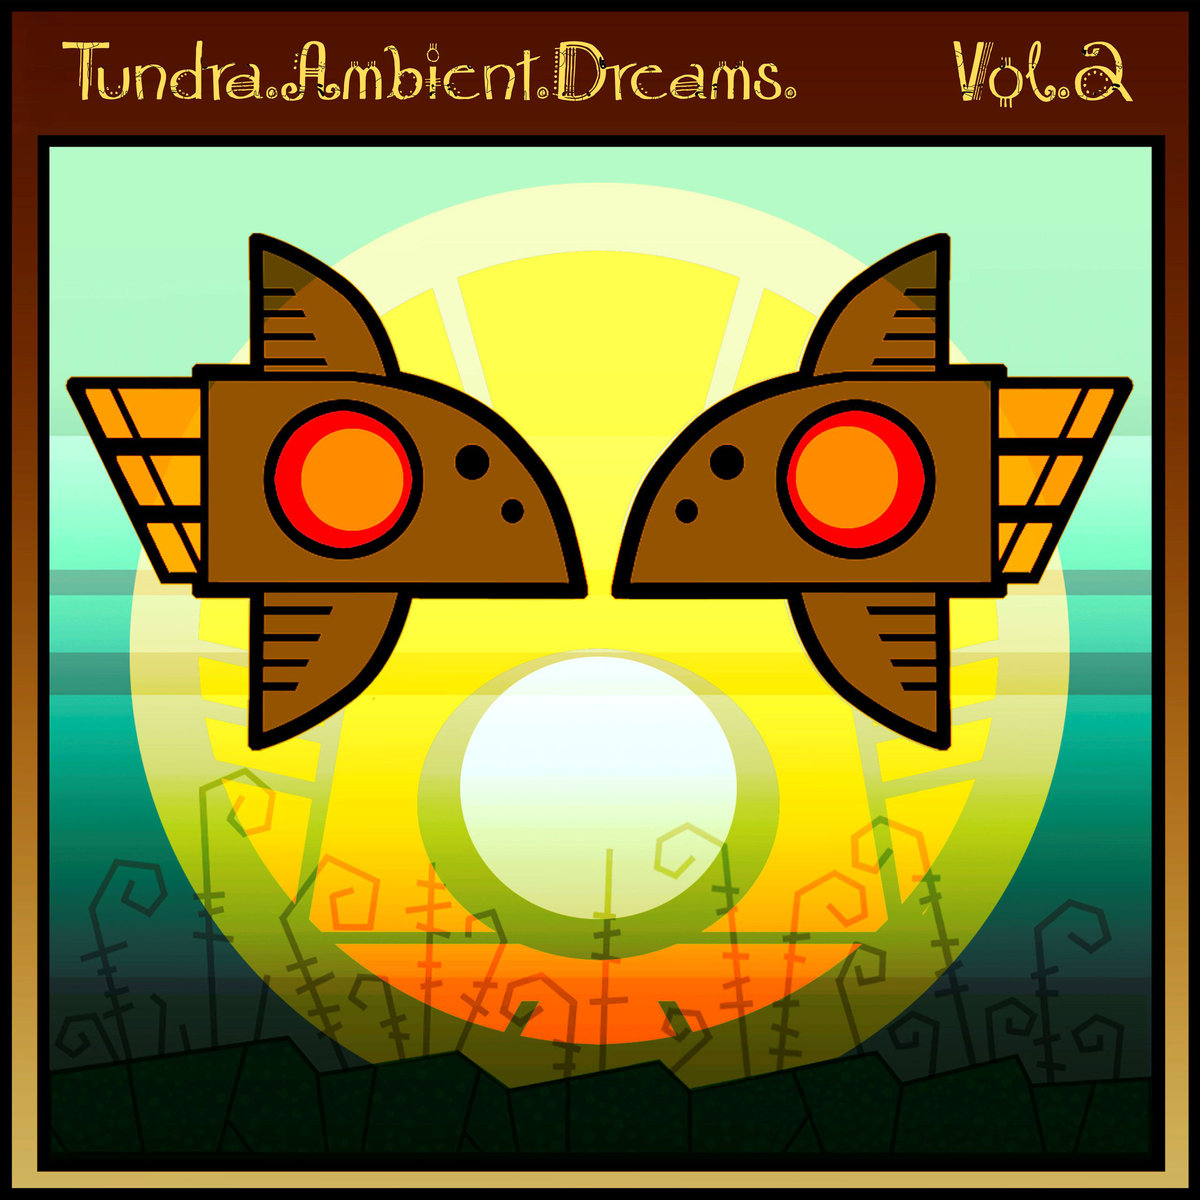 Fox - Rehab @ 'Ellipsis II - Tundra.Ambient.Dreams. Vol.2' album (electronic, ambient)